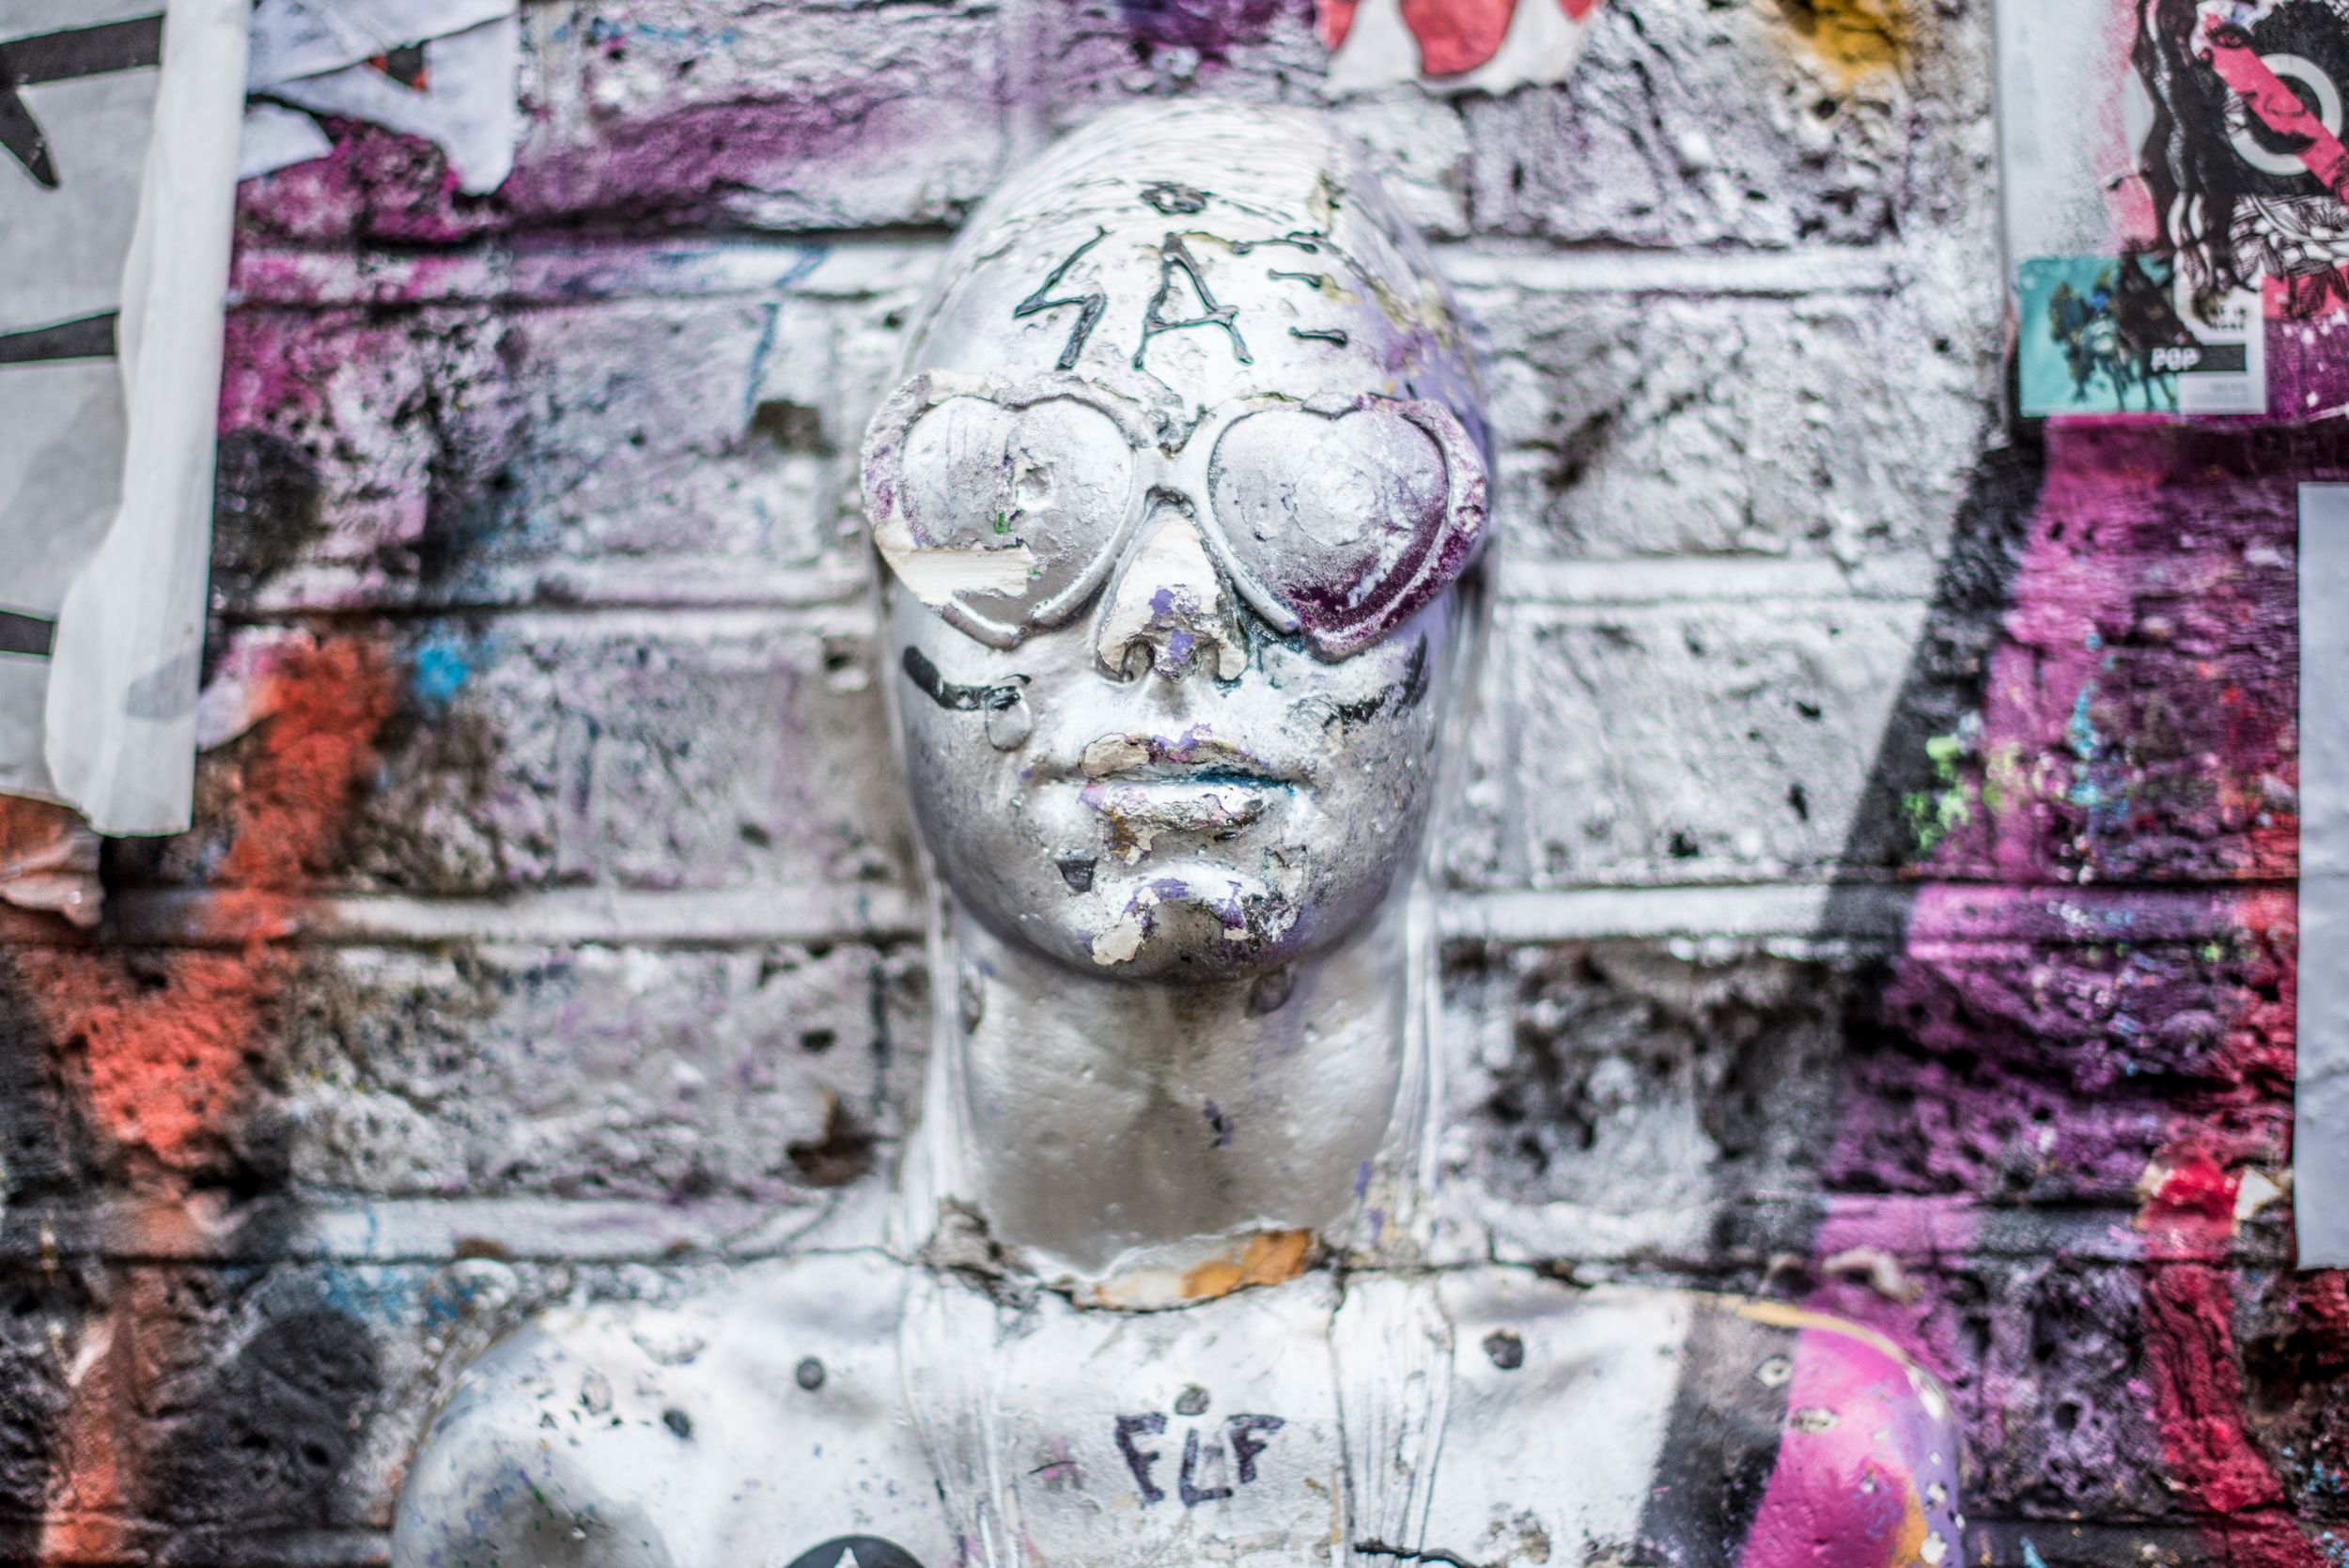 Cool street art of a silver statue with heart glasses spray painted silver in London's artsy Shoreditch neighborhood